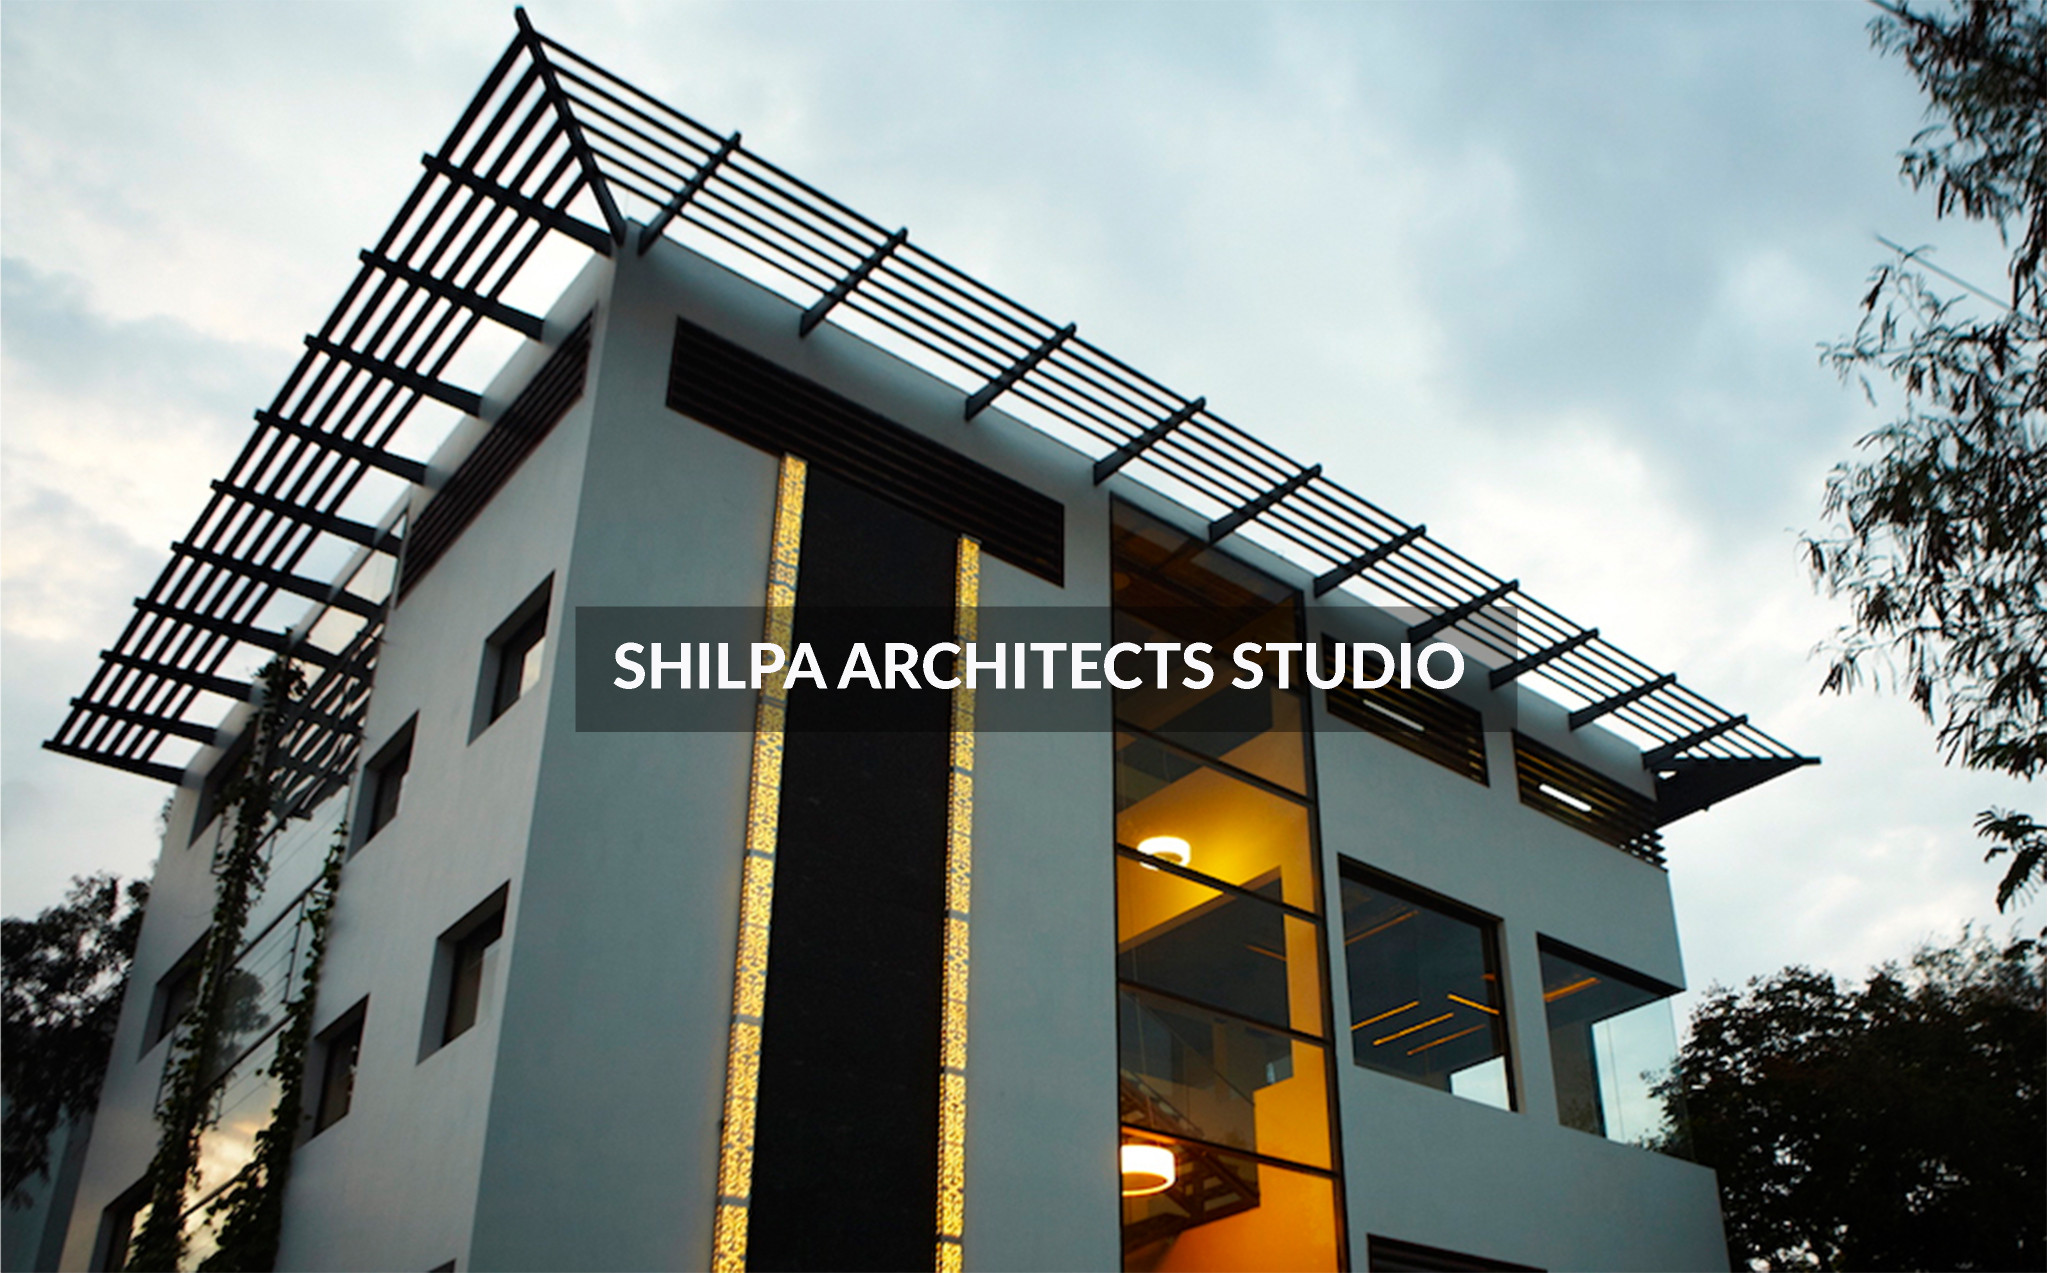 Global Design Studio of Shilpa Architects Planners Designers - LEED Platinum rated building